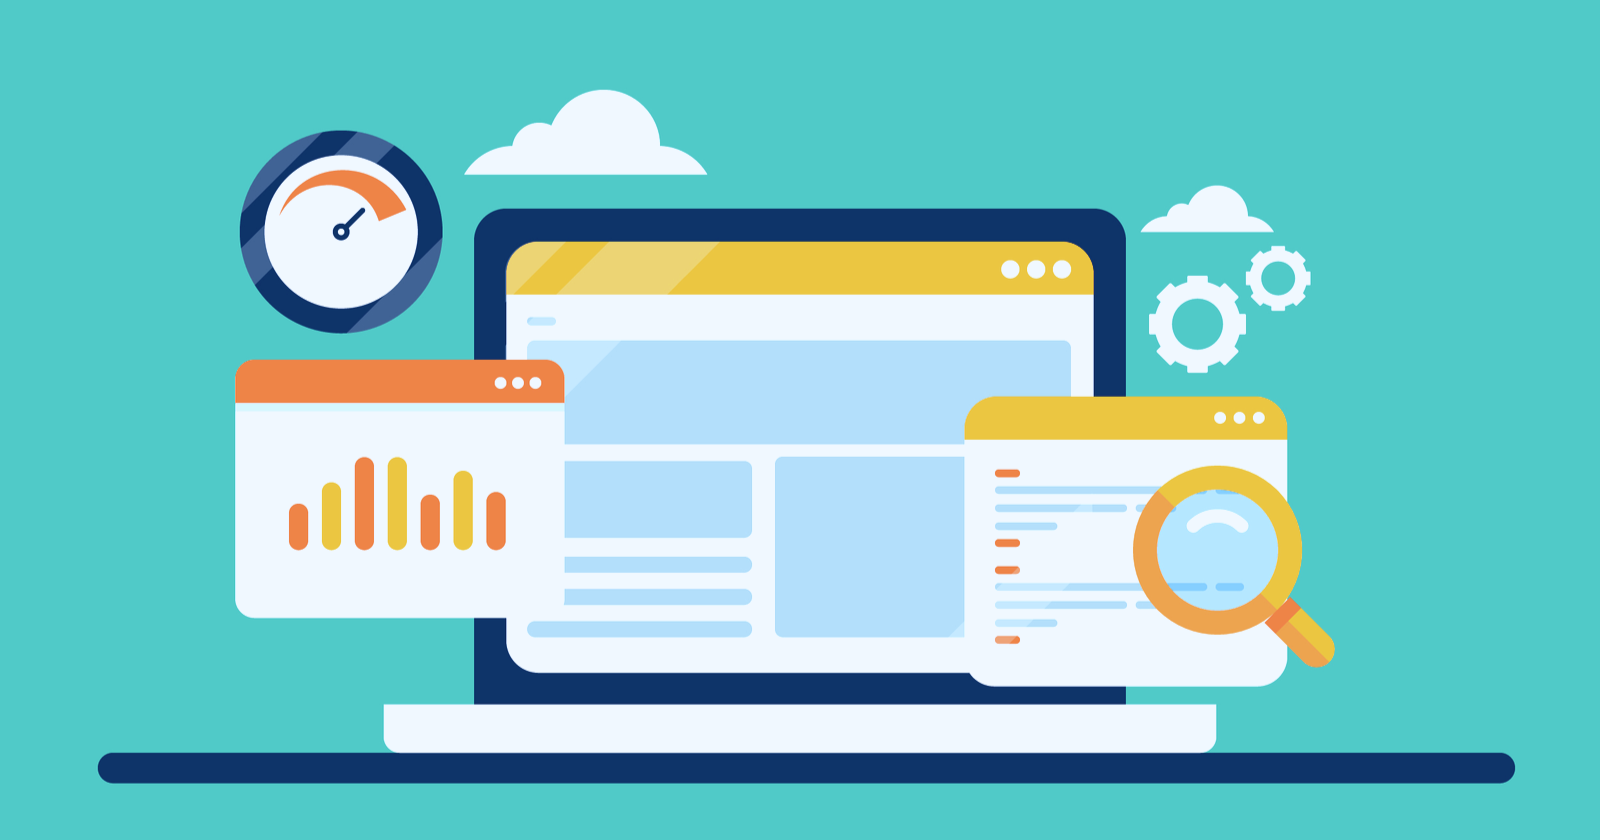 How Does a Dynamically Built Page in Real-Time Impact SEO?